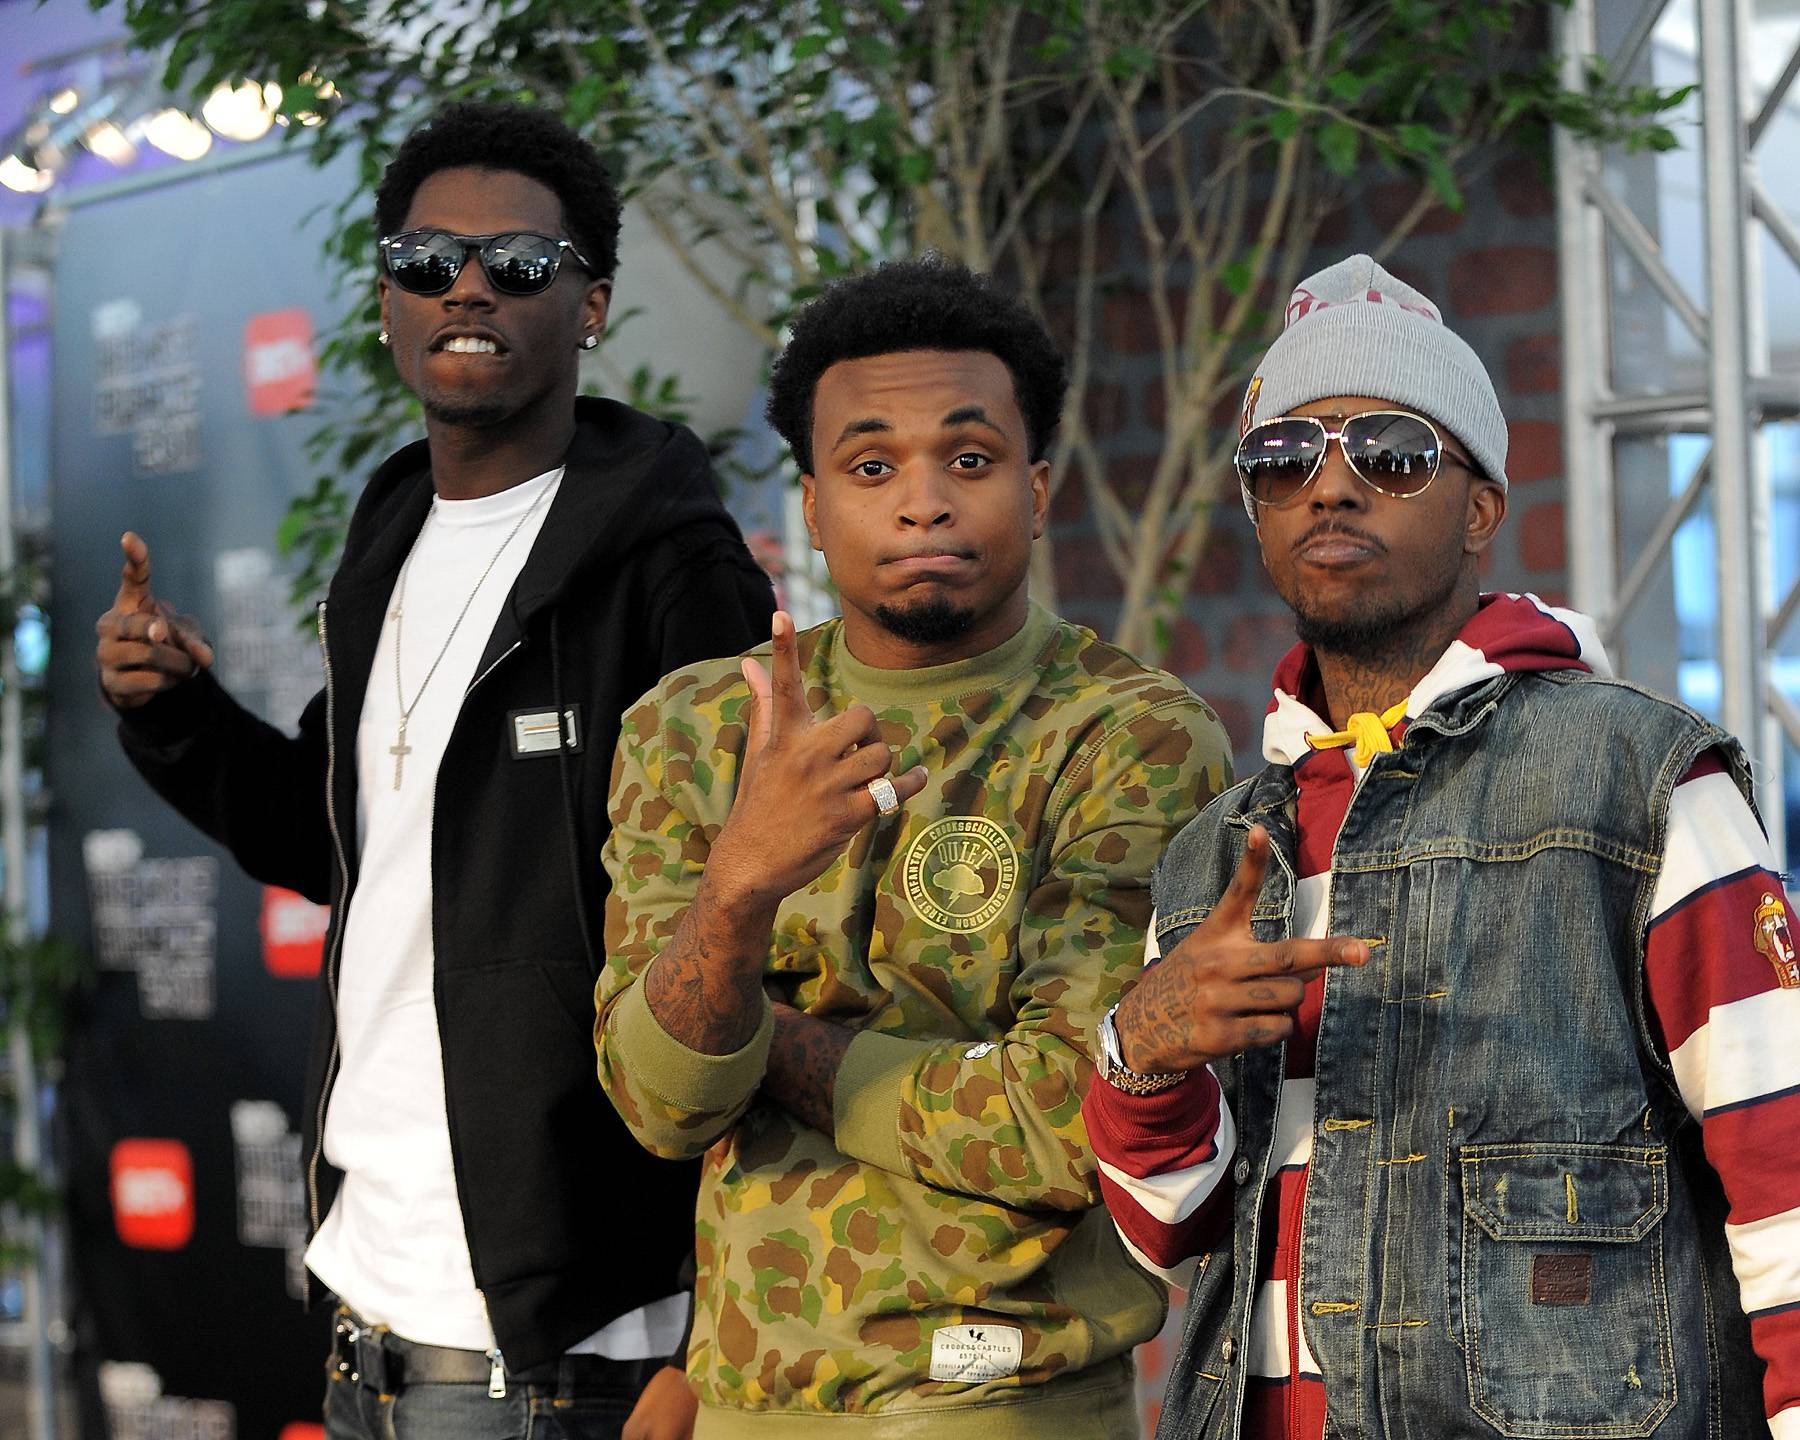 Southern Pride - Travis Porter makes no secret about the fact that they rep the South and are ATLiens to be reckoned with.(Photo: Jeff Daly/PictureGroup)